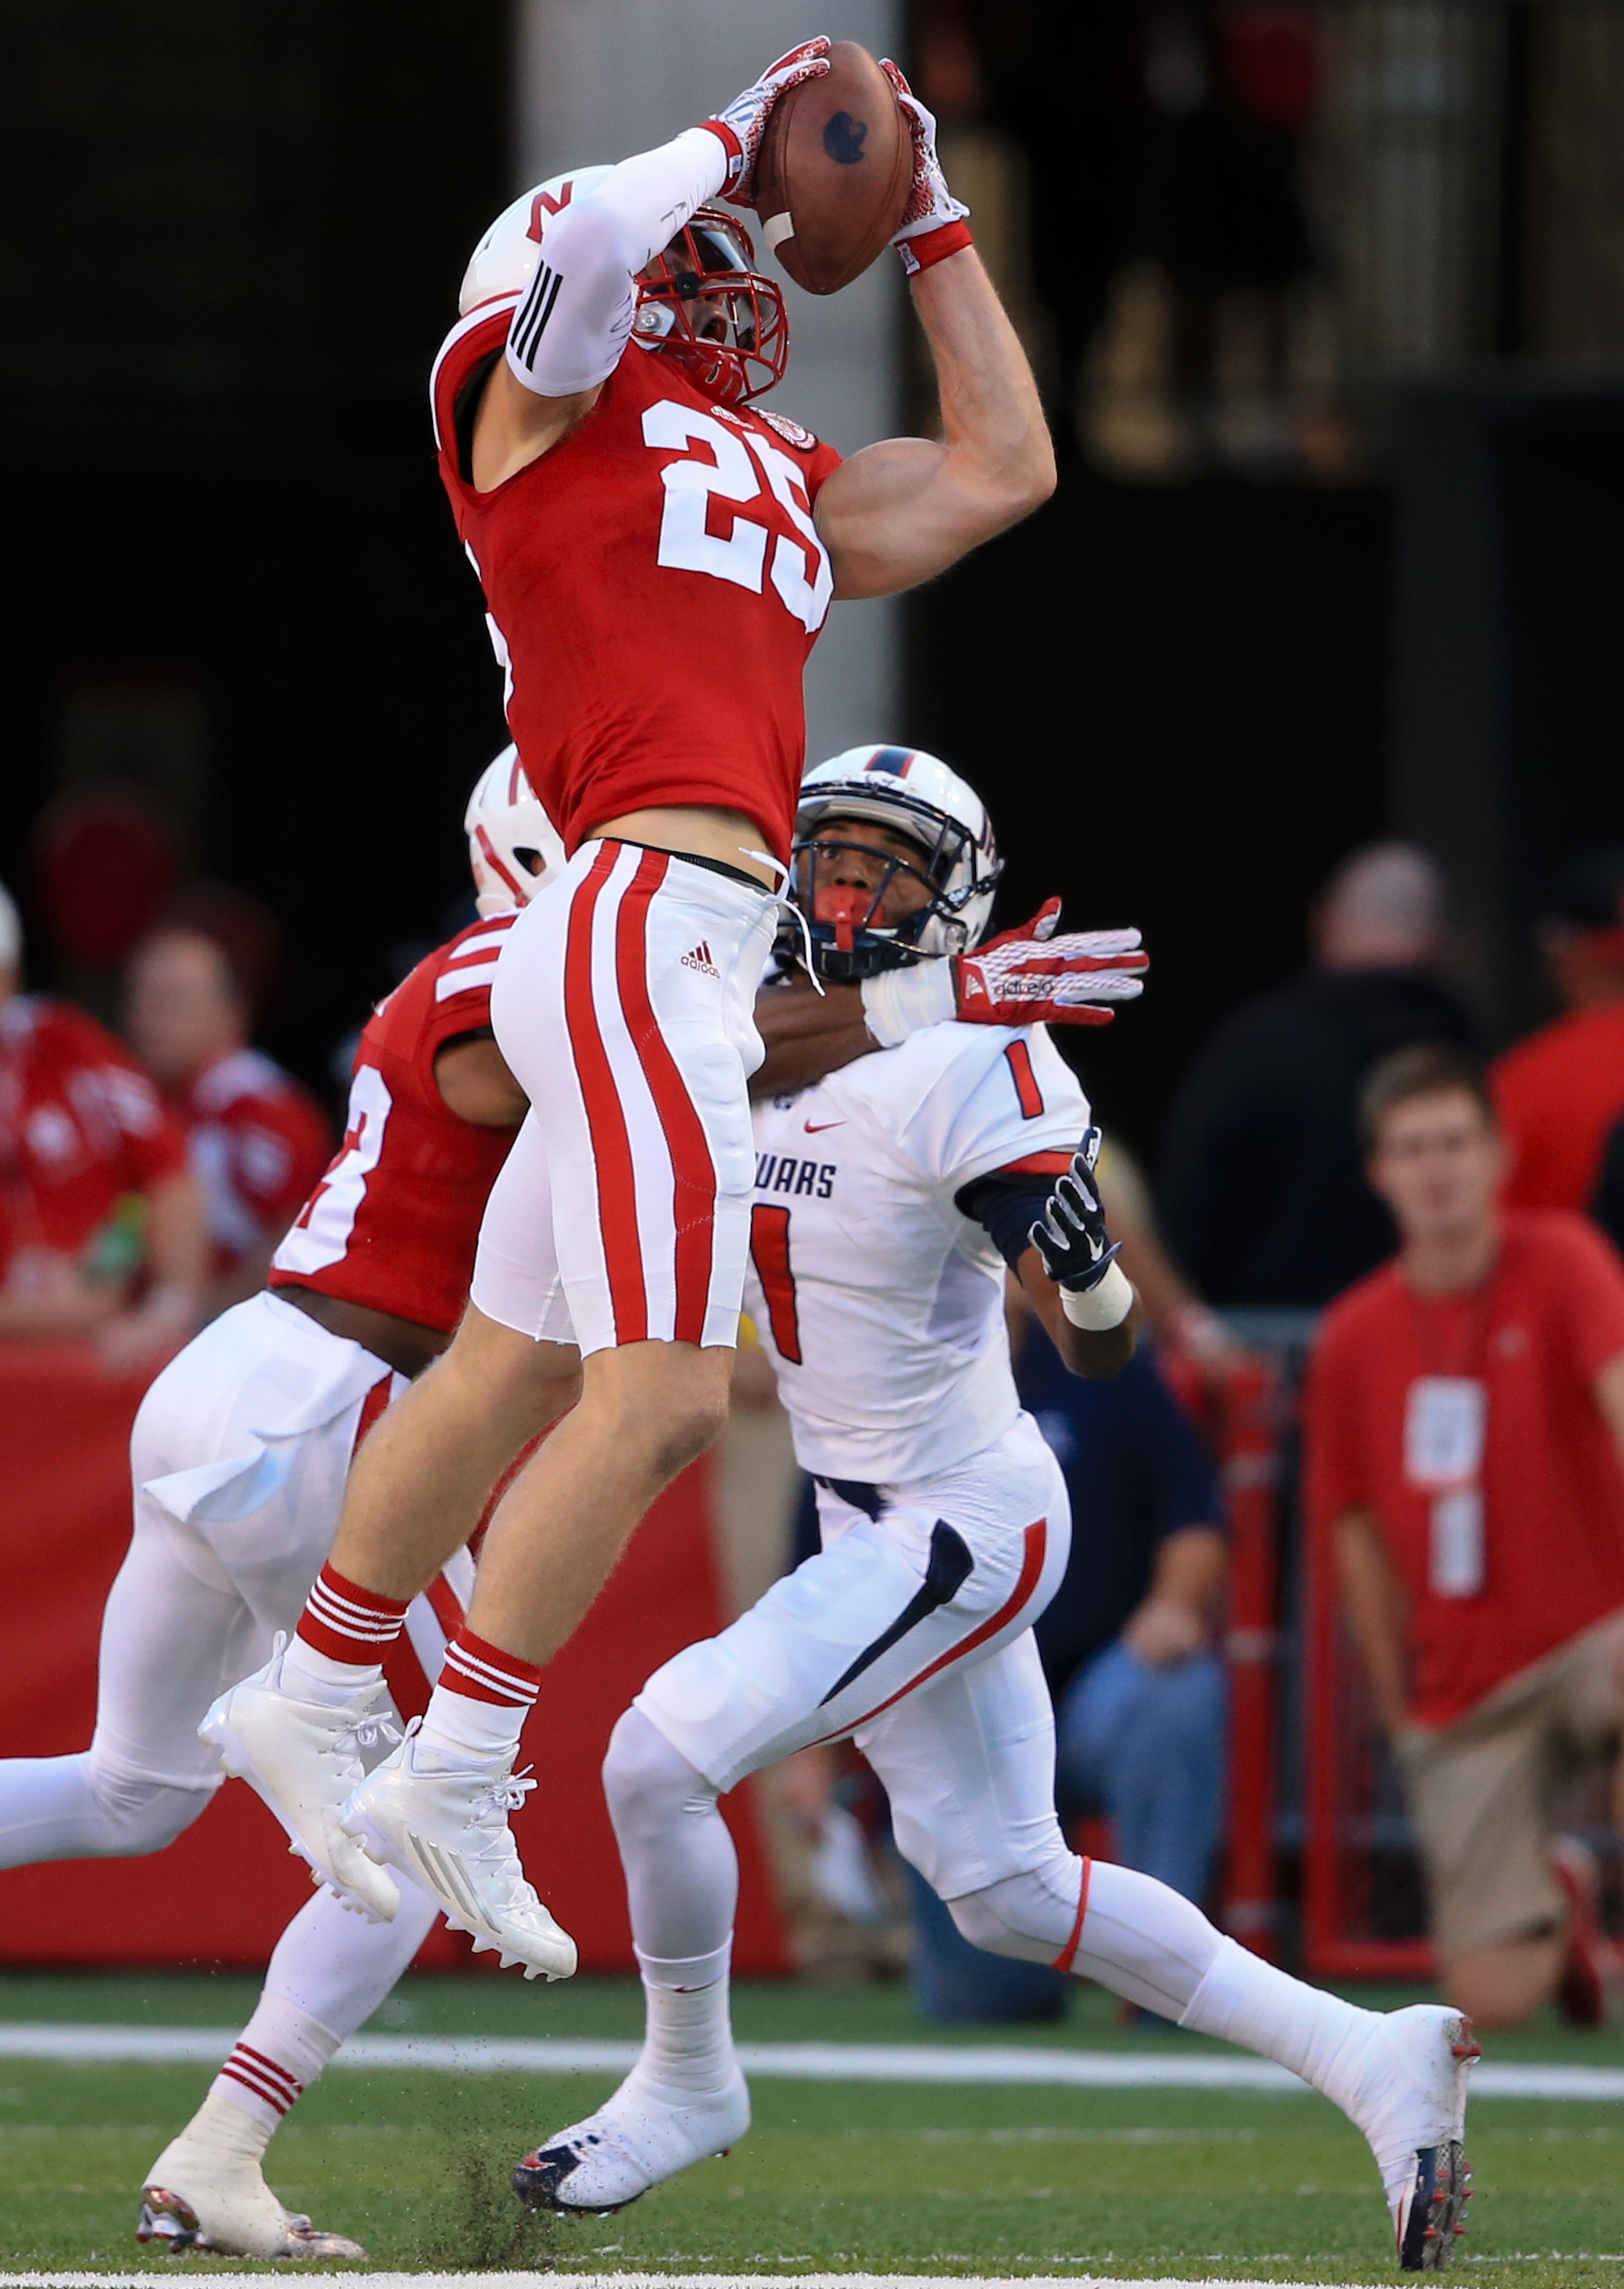 FILE- In this Sept. 12, 2015, file photo, Nebraska safety Nate Gerry (25) intercepts a pass intended for South Alabama wide receiver Josh Magee during the first half of an NCAA college football game in Lincoln, Neb. Gerry is contending for national postse